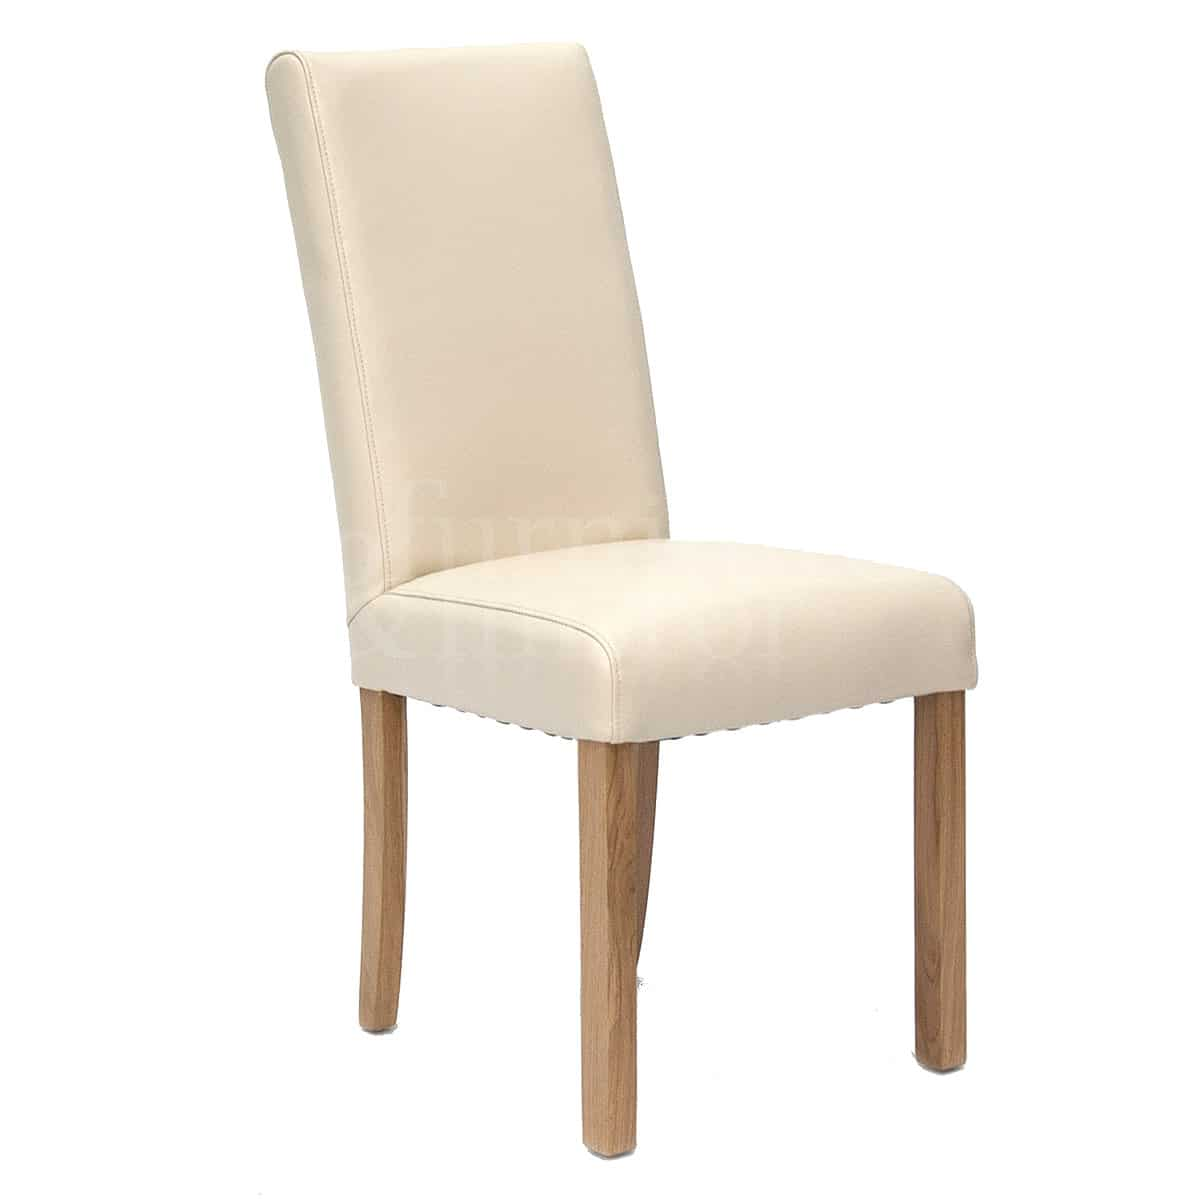 Ivory Dining Chairs Marina Ivory Oak Leather Dining Chair Furniture And Mirror